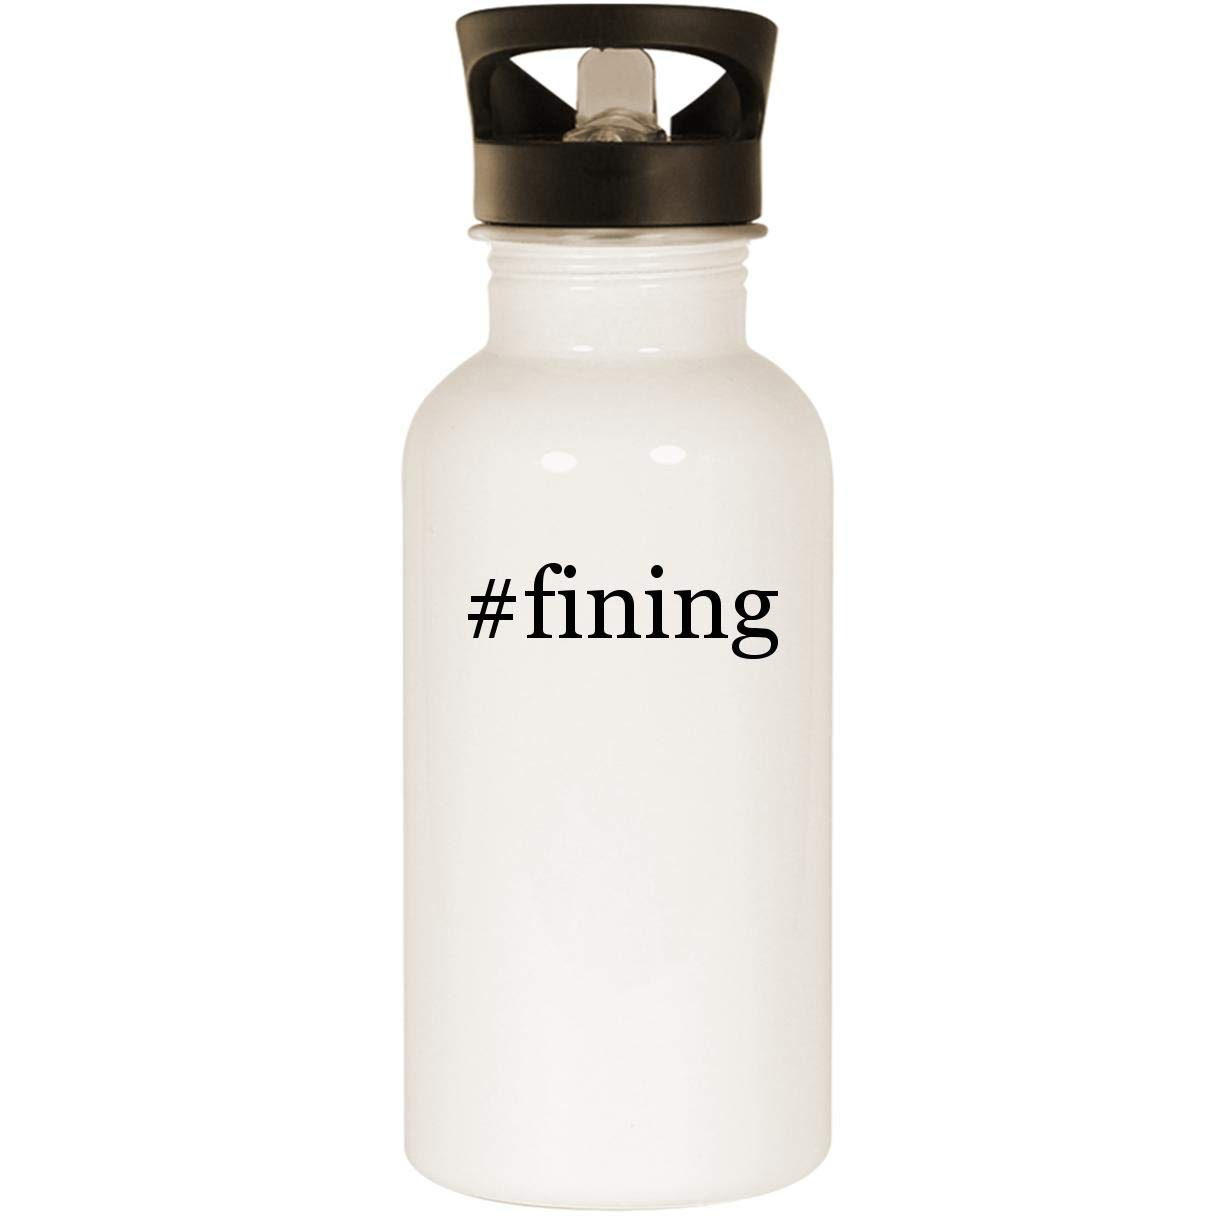 #fining - Stainless Steel 20oz Road Ready Water Bottle, White